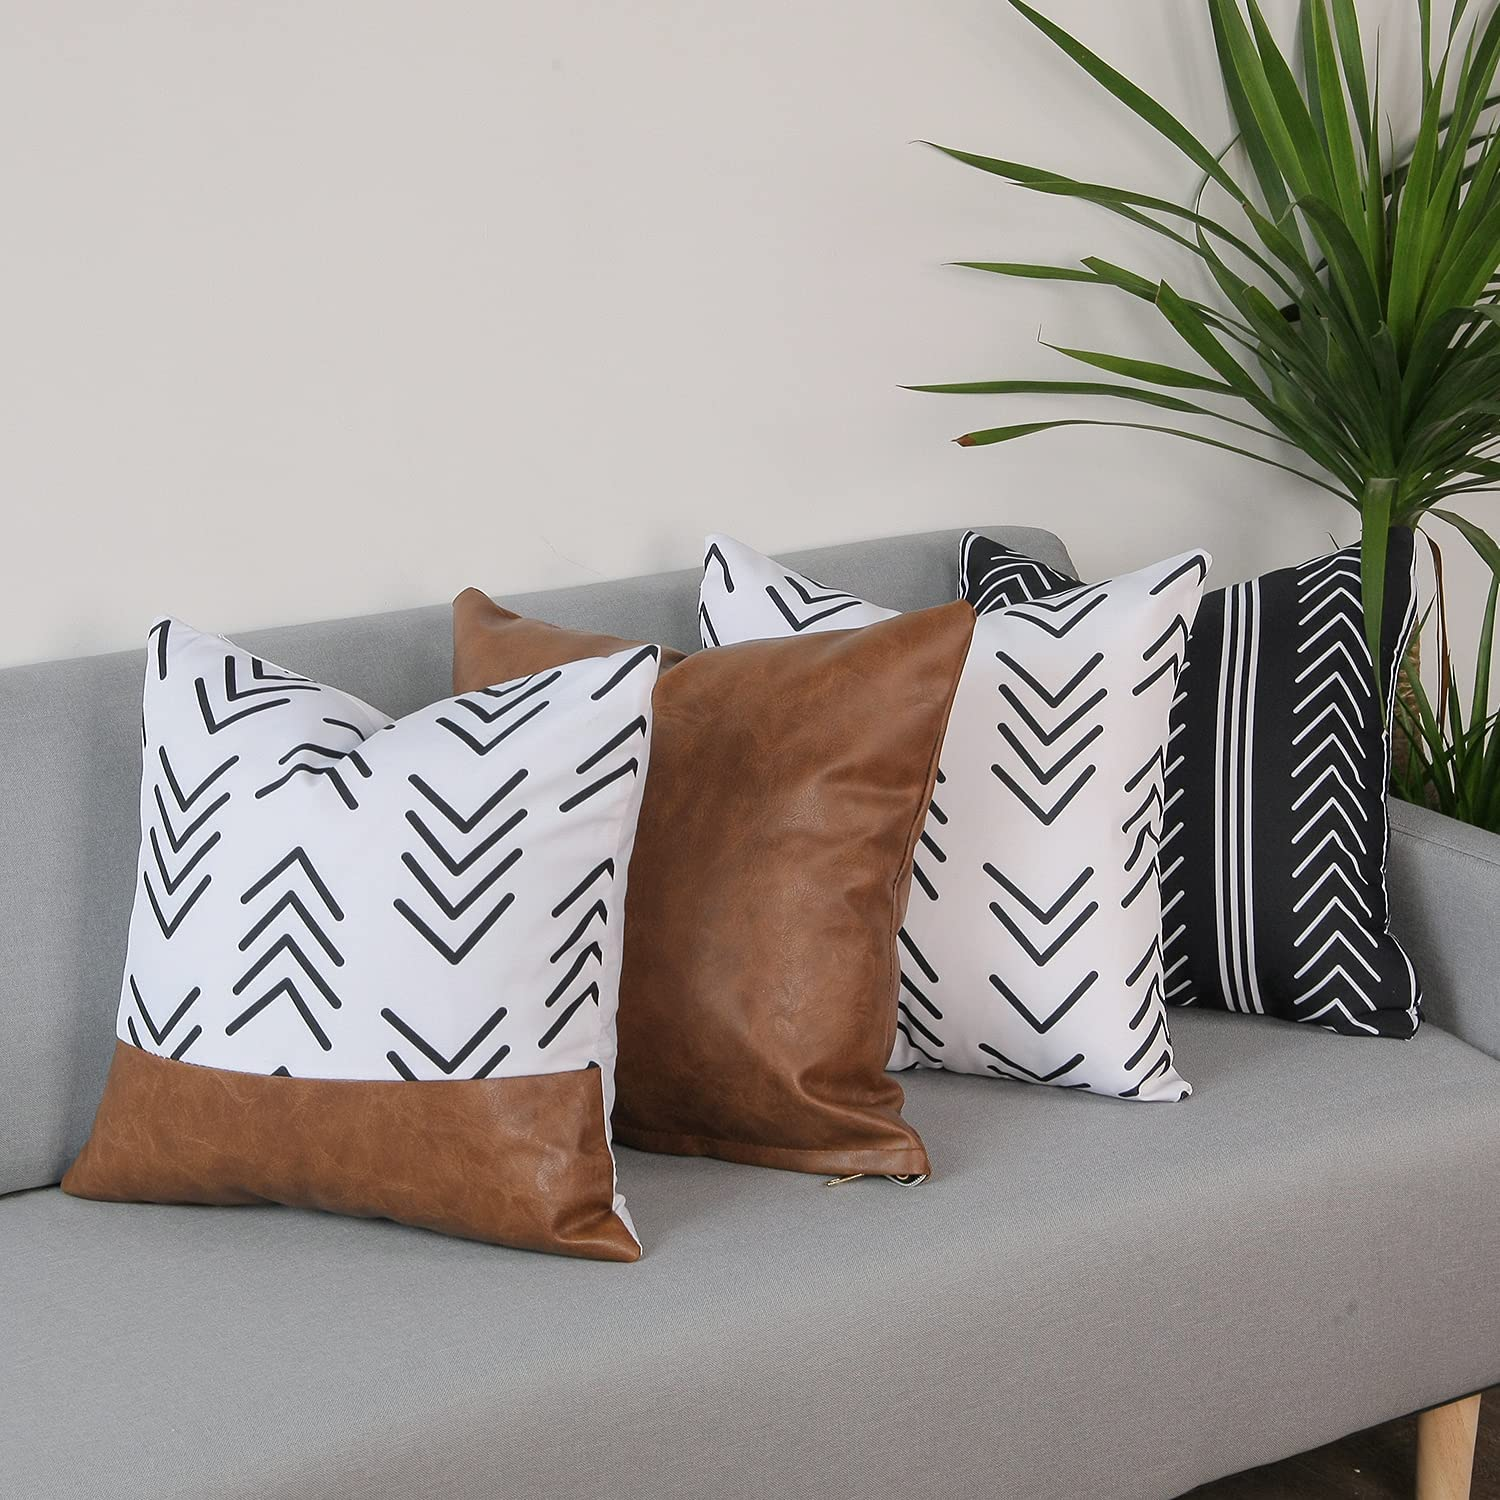 cygnus Decorative Throw Pillow Covers 18x18 inch Set of 4, Boho Modern Farmhouse Neutral Decorative Pillowcases Faux Leather Accent Cushion Case for Couch, Bed, Home Decor